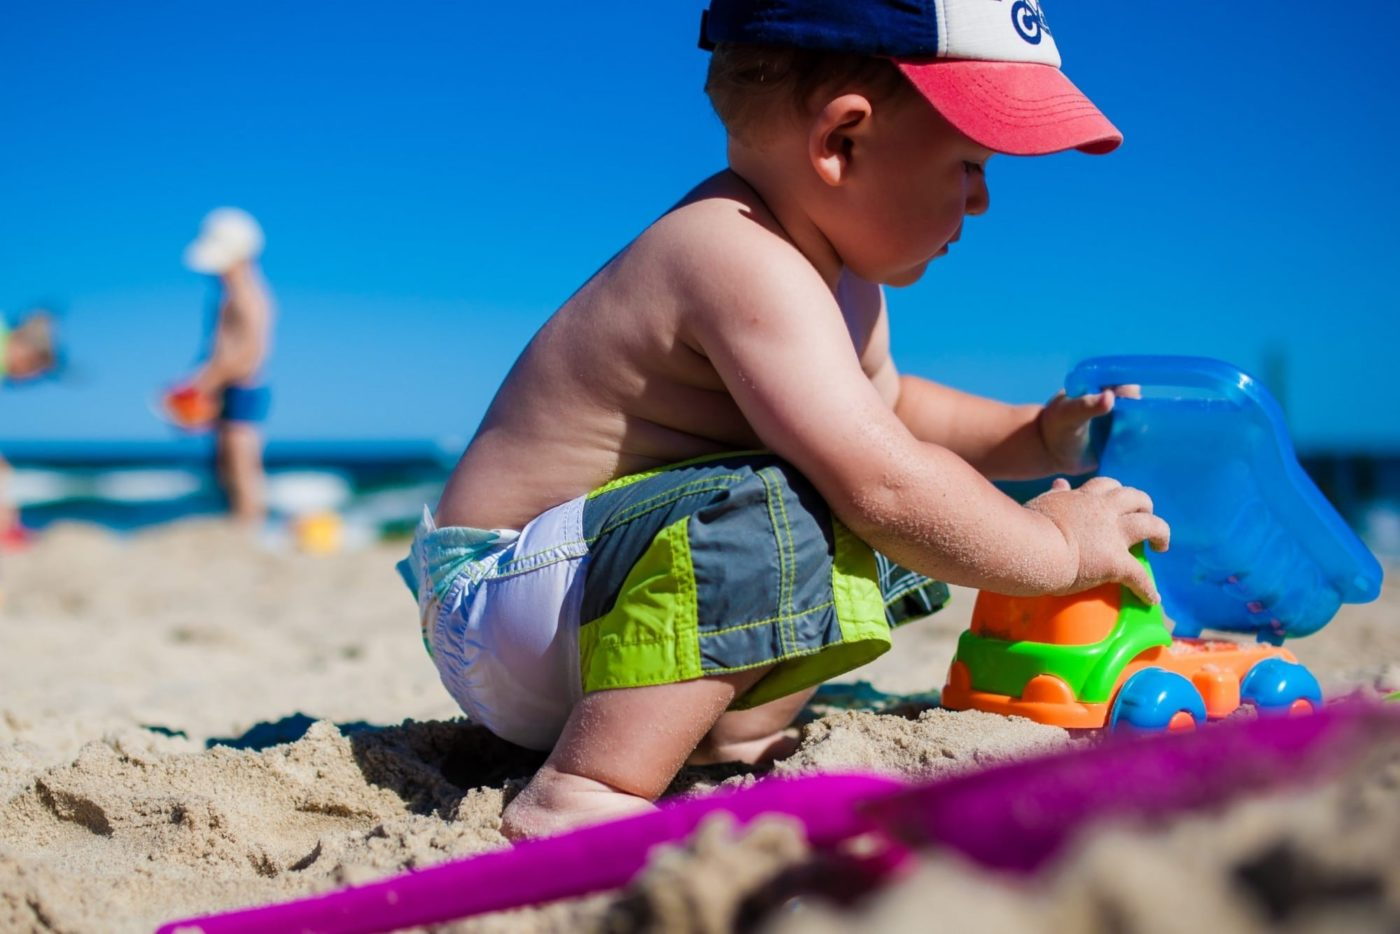 Boy on the beach playing with toys